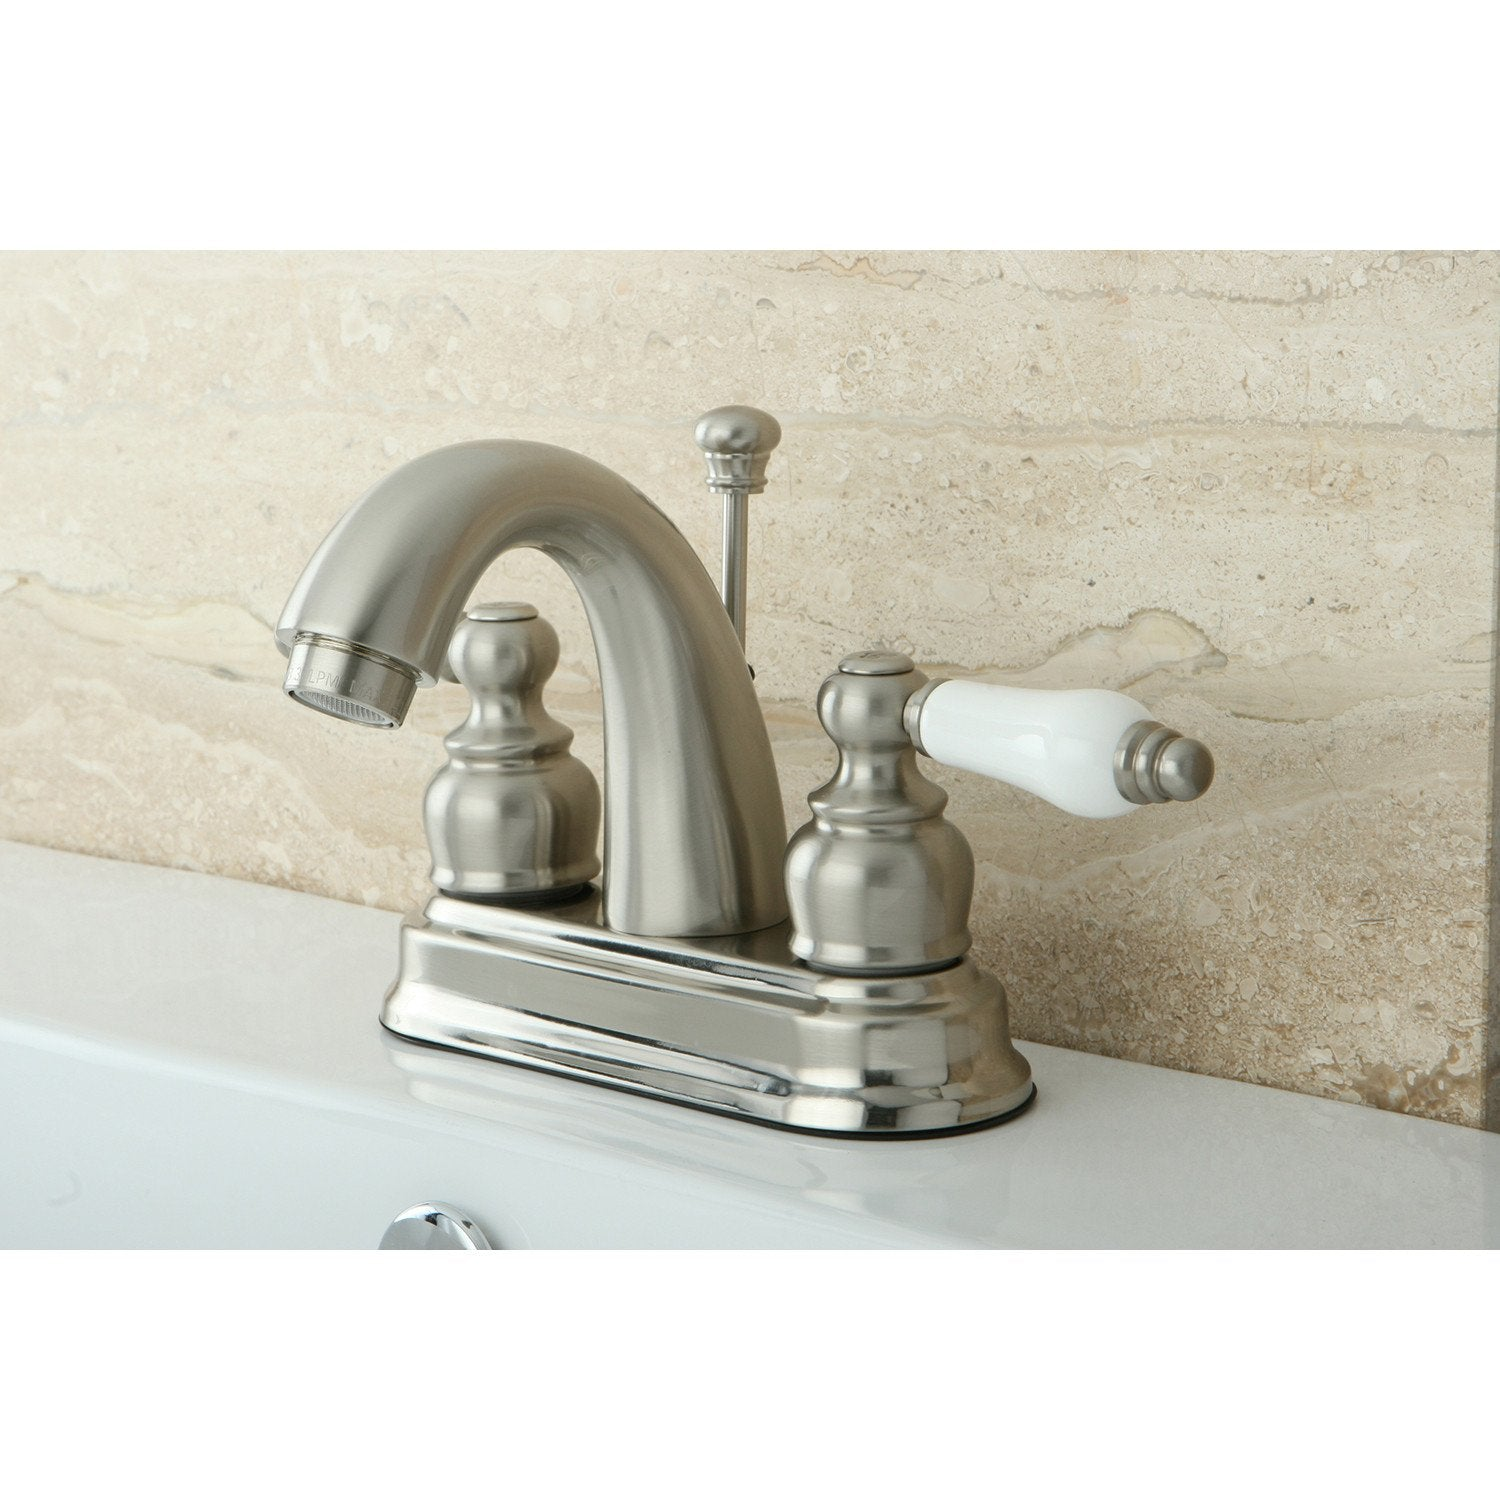 "Kingston Satin Nickel 2 Handle 4"" Centerset Bathroom Faucet with Pop-up KB5618PL"